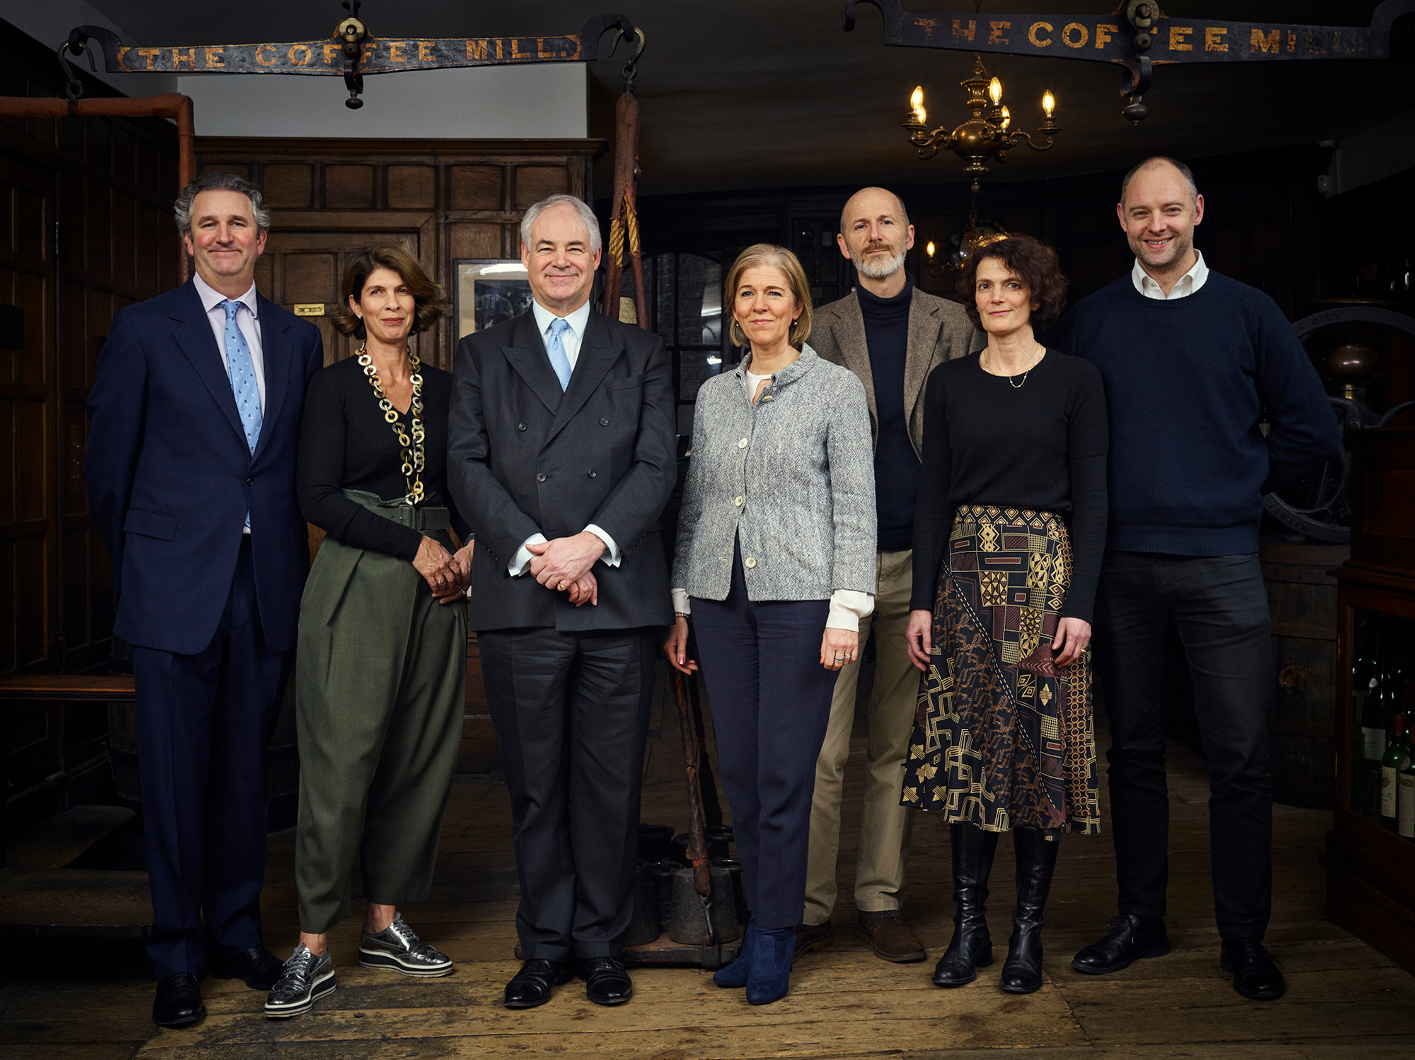 Members of the Berry and Rudd families, from L to R: Edward Rudd, Emma Marsh, Simon Berry, Lizzy Rudd, Richard Rudd, Clare Rodger, Geordie Willis